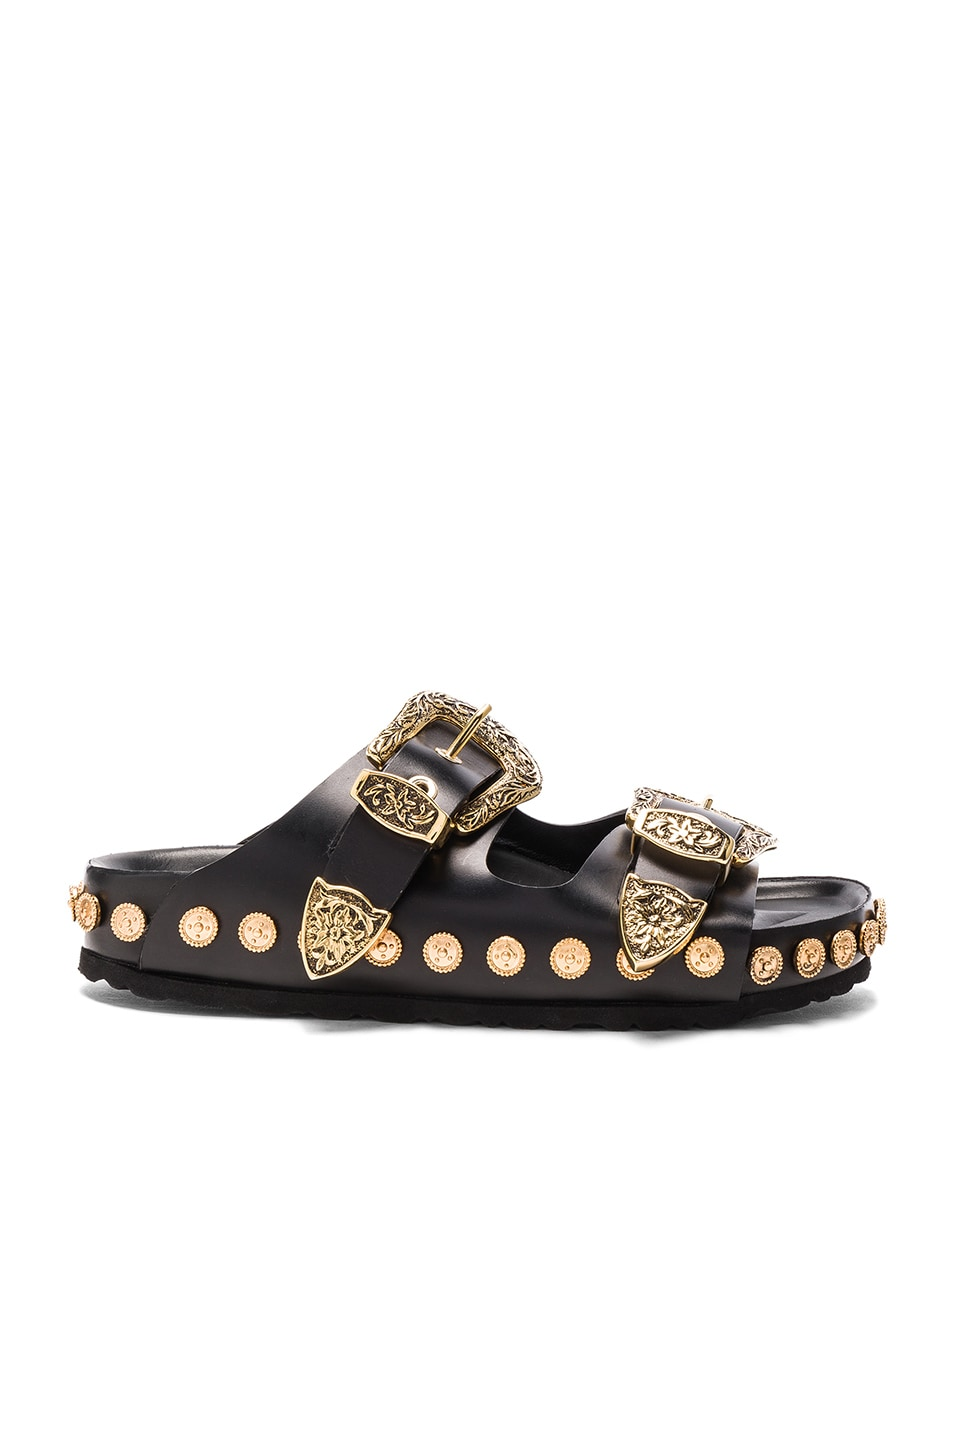 Image 1 of Fausto Puglisi Studded Leather Sandals in Black & Gold